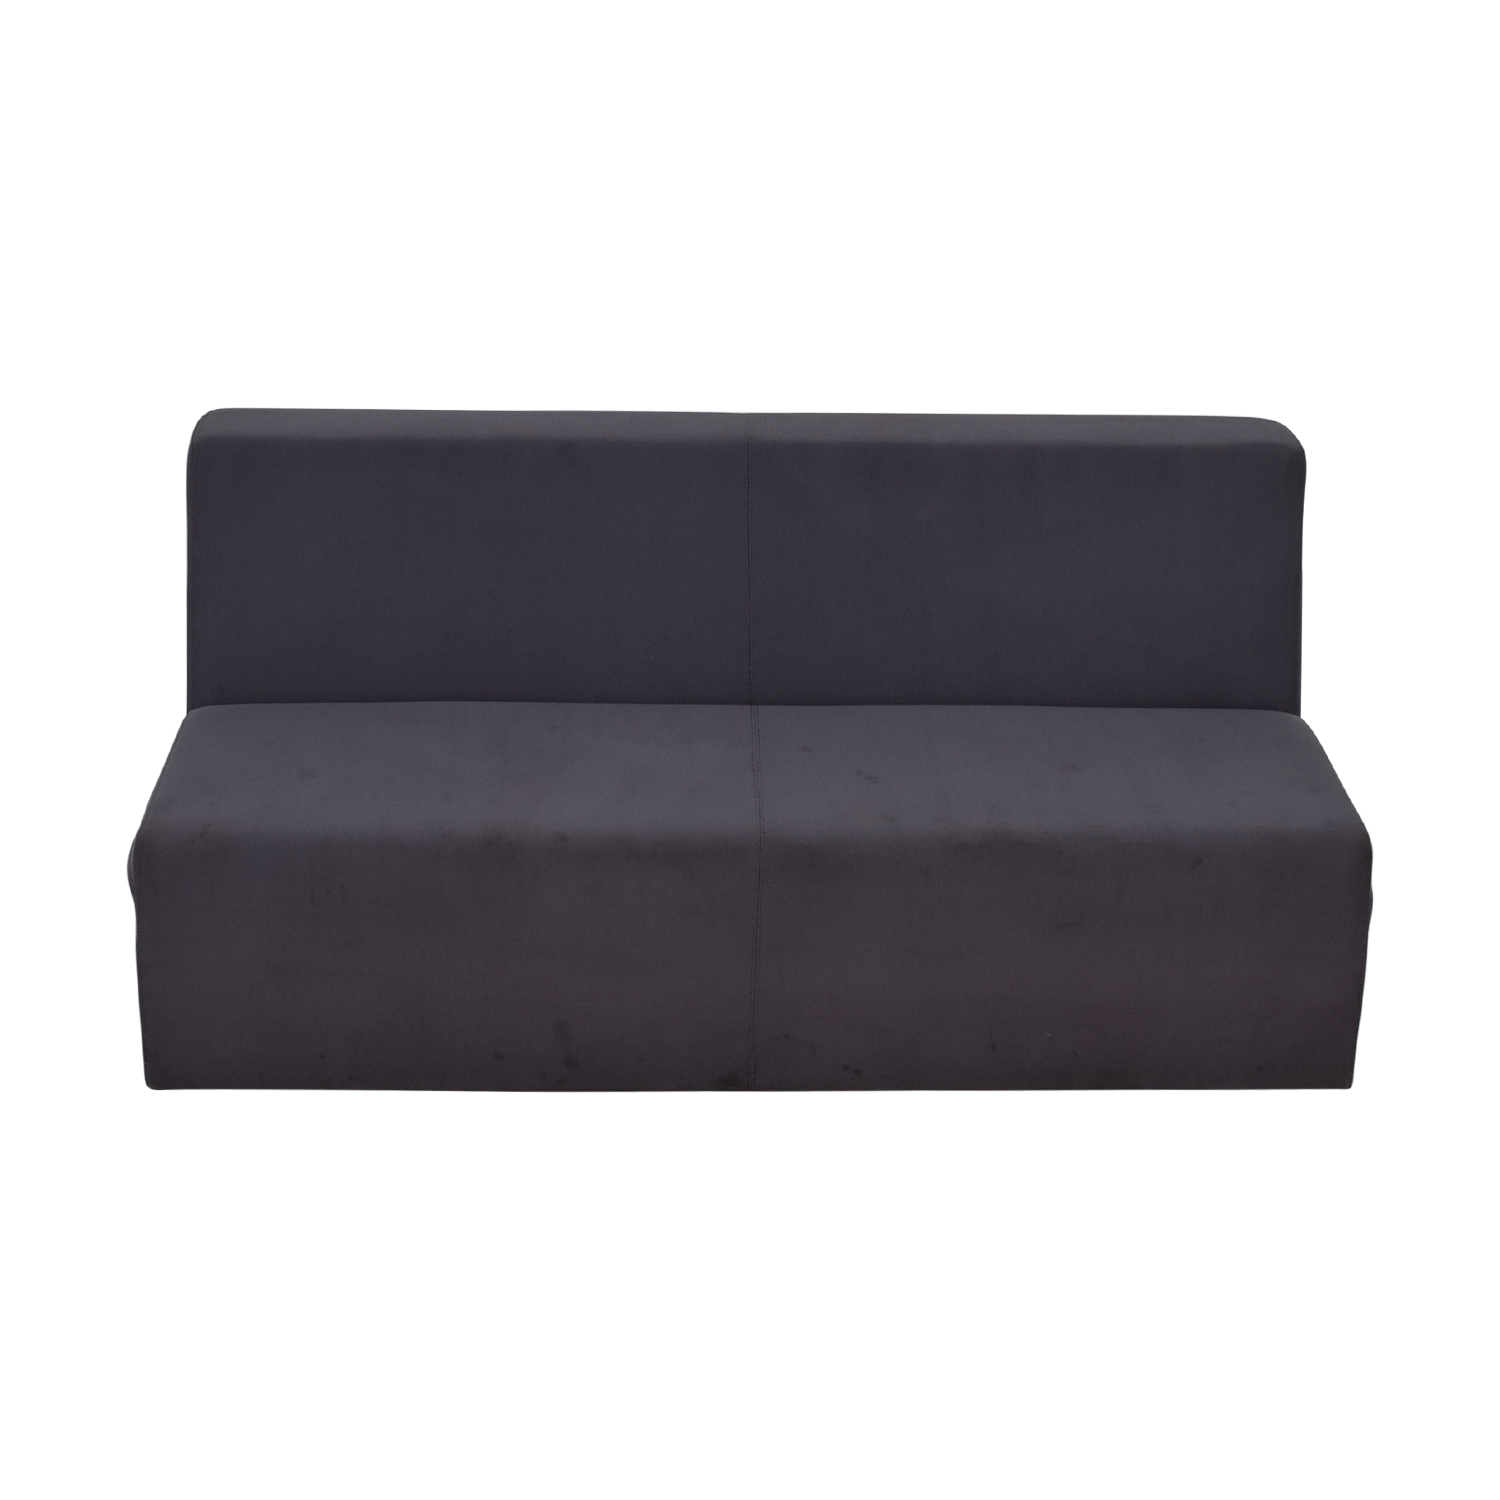 Steelcase Turnstone Steelcase Turnstone Grey Campfire Couch used